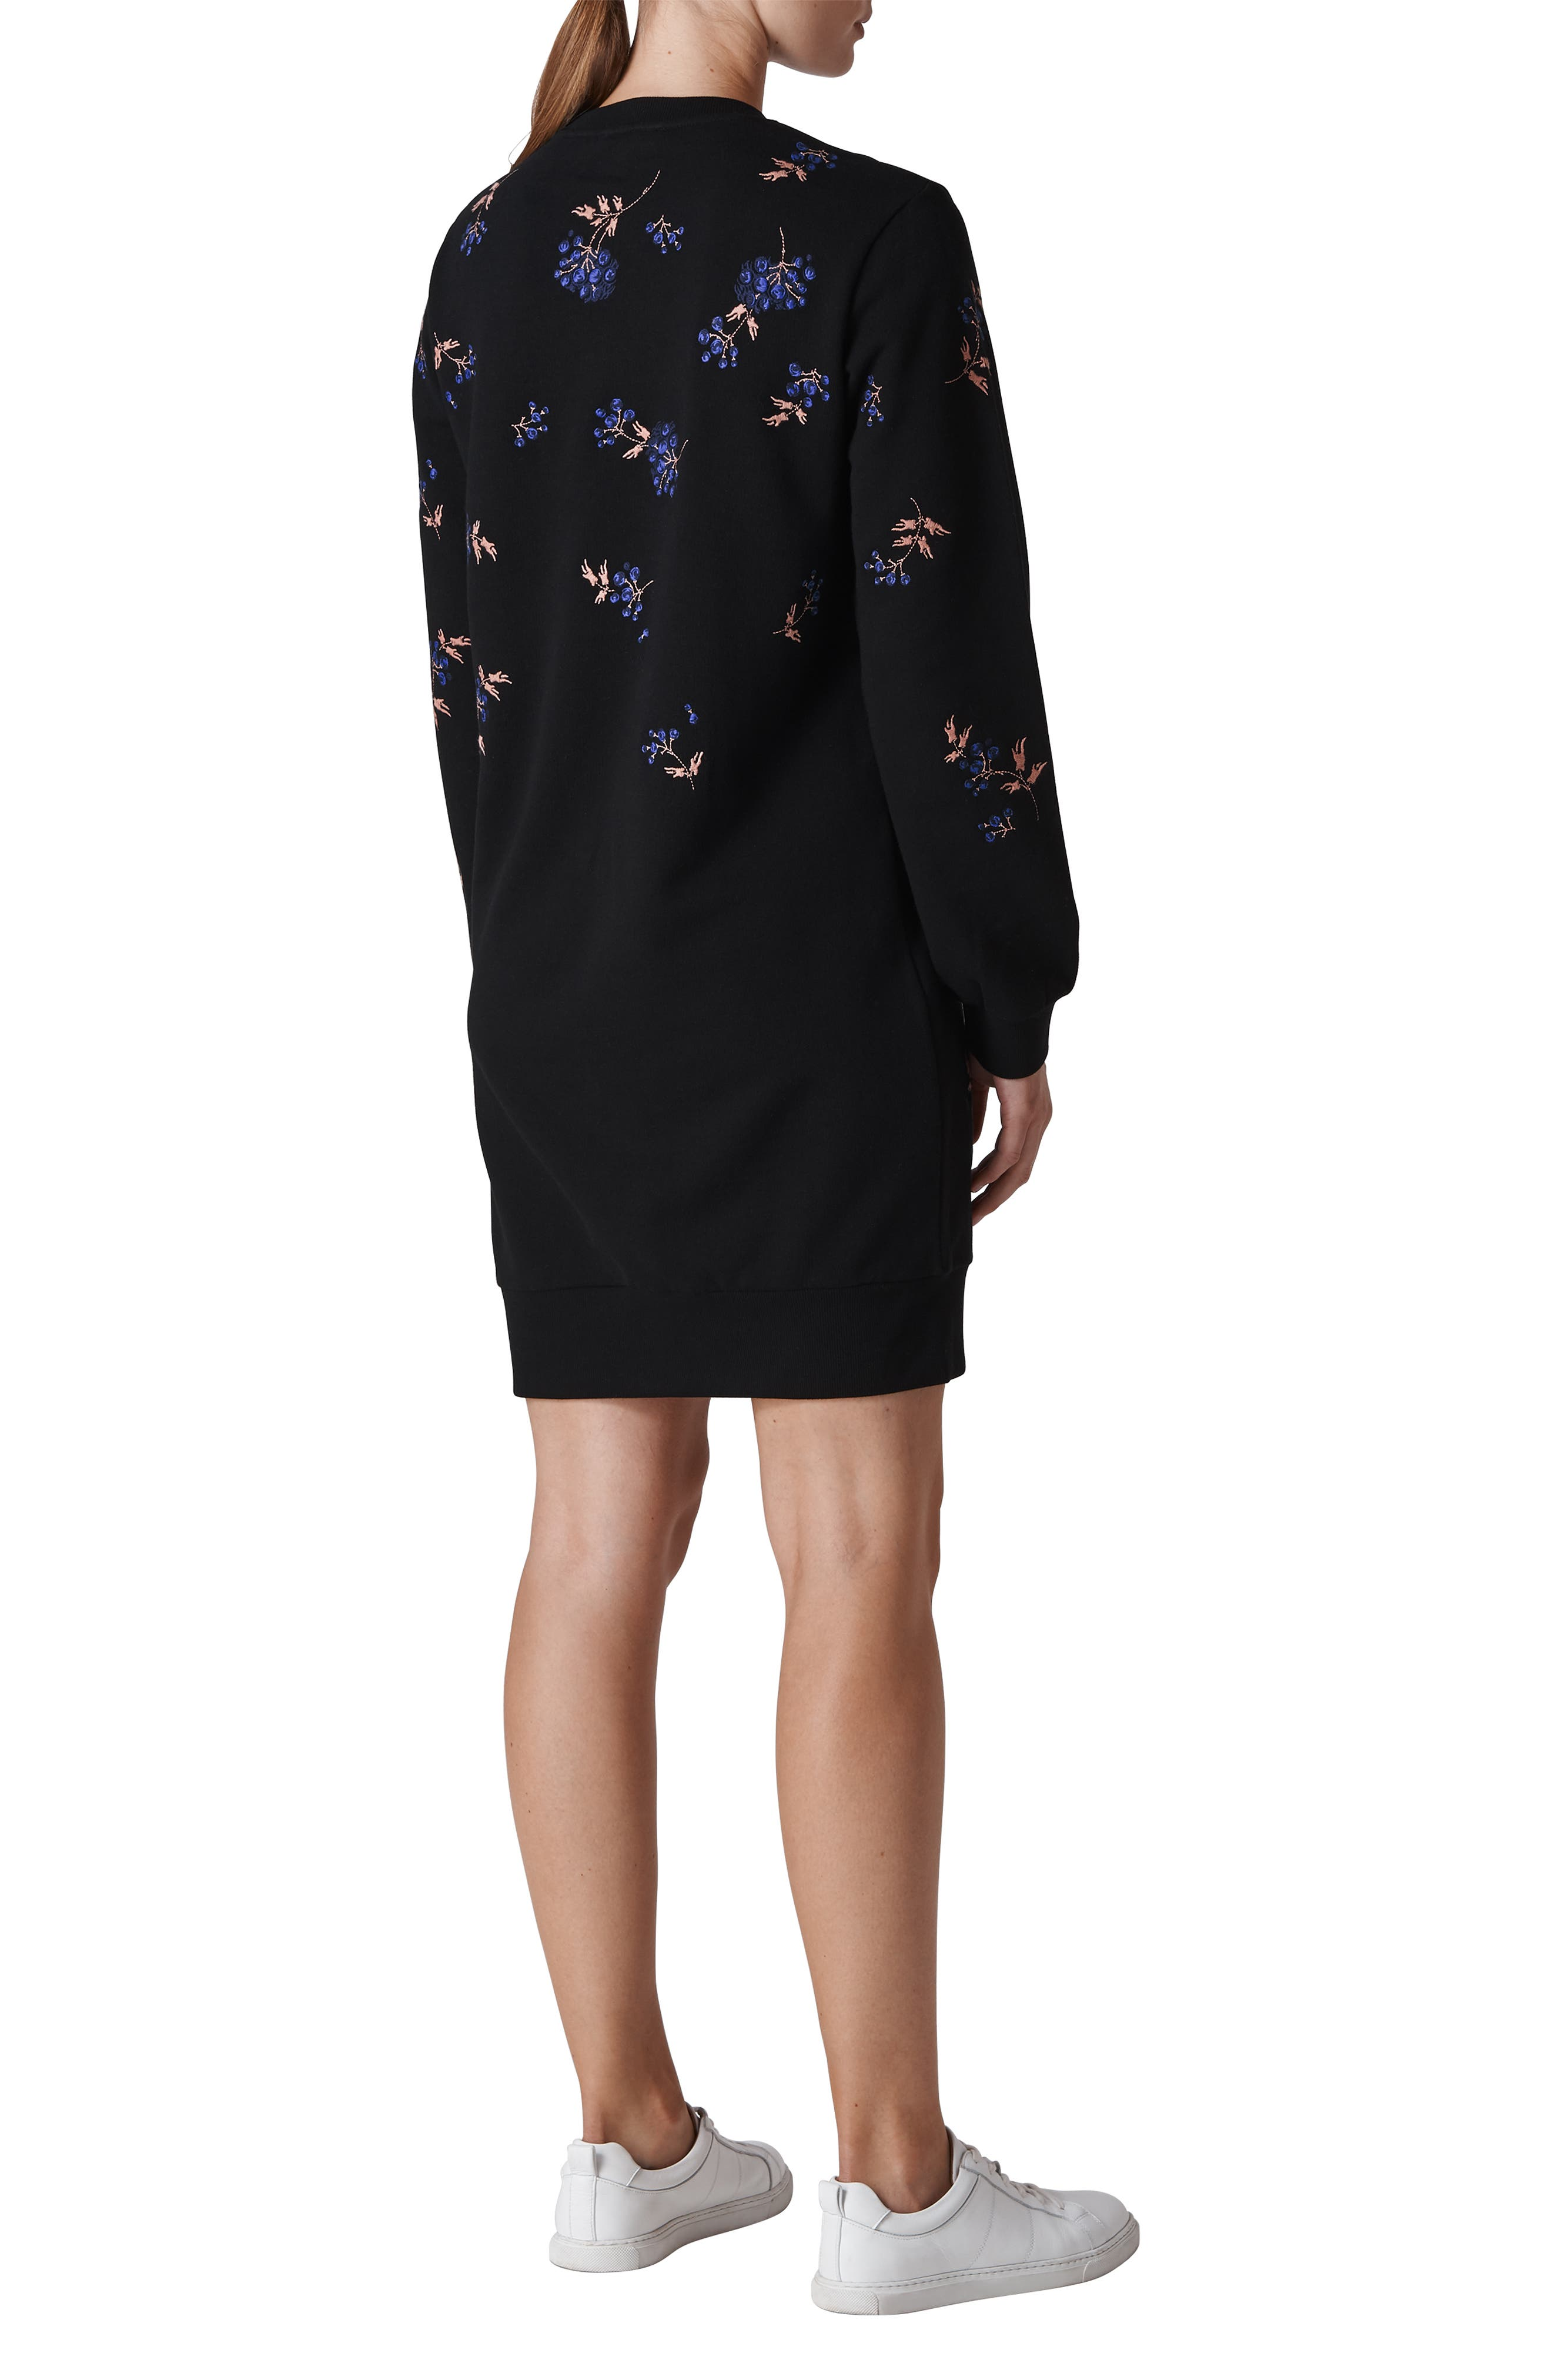 Elderberry Embroidered Sweatshirt Dress,                             Alternate thumbnail 2, color,                             001